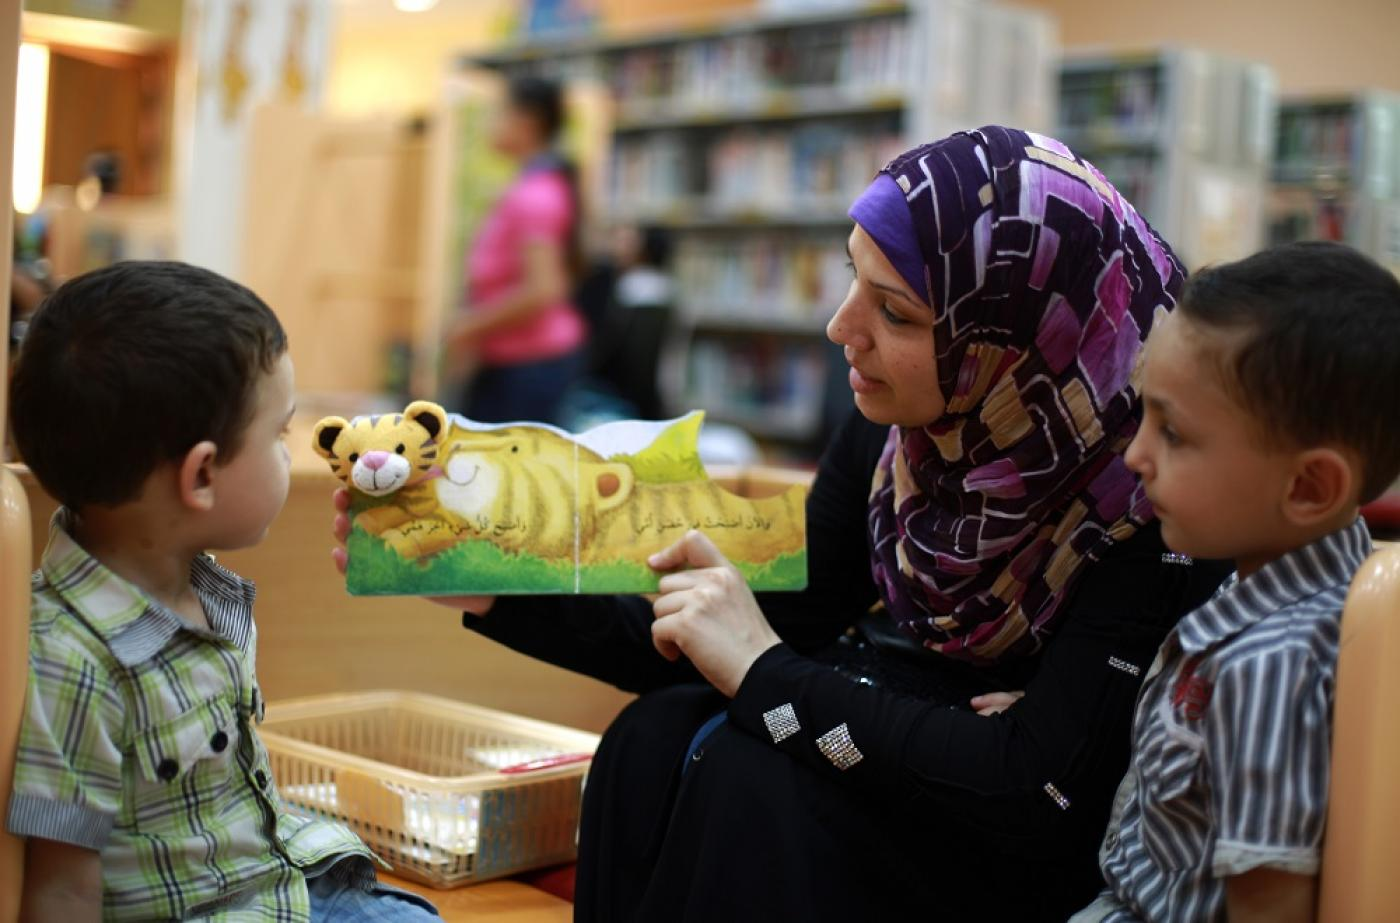 Reading our own stories: Boom in Arabic children's books | Middle East Eye